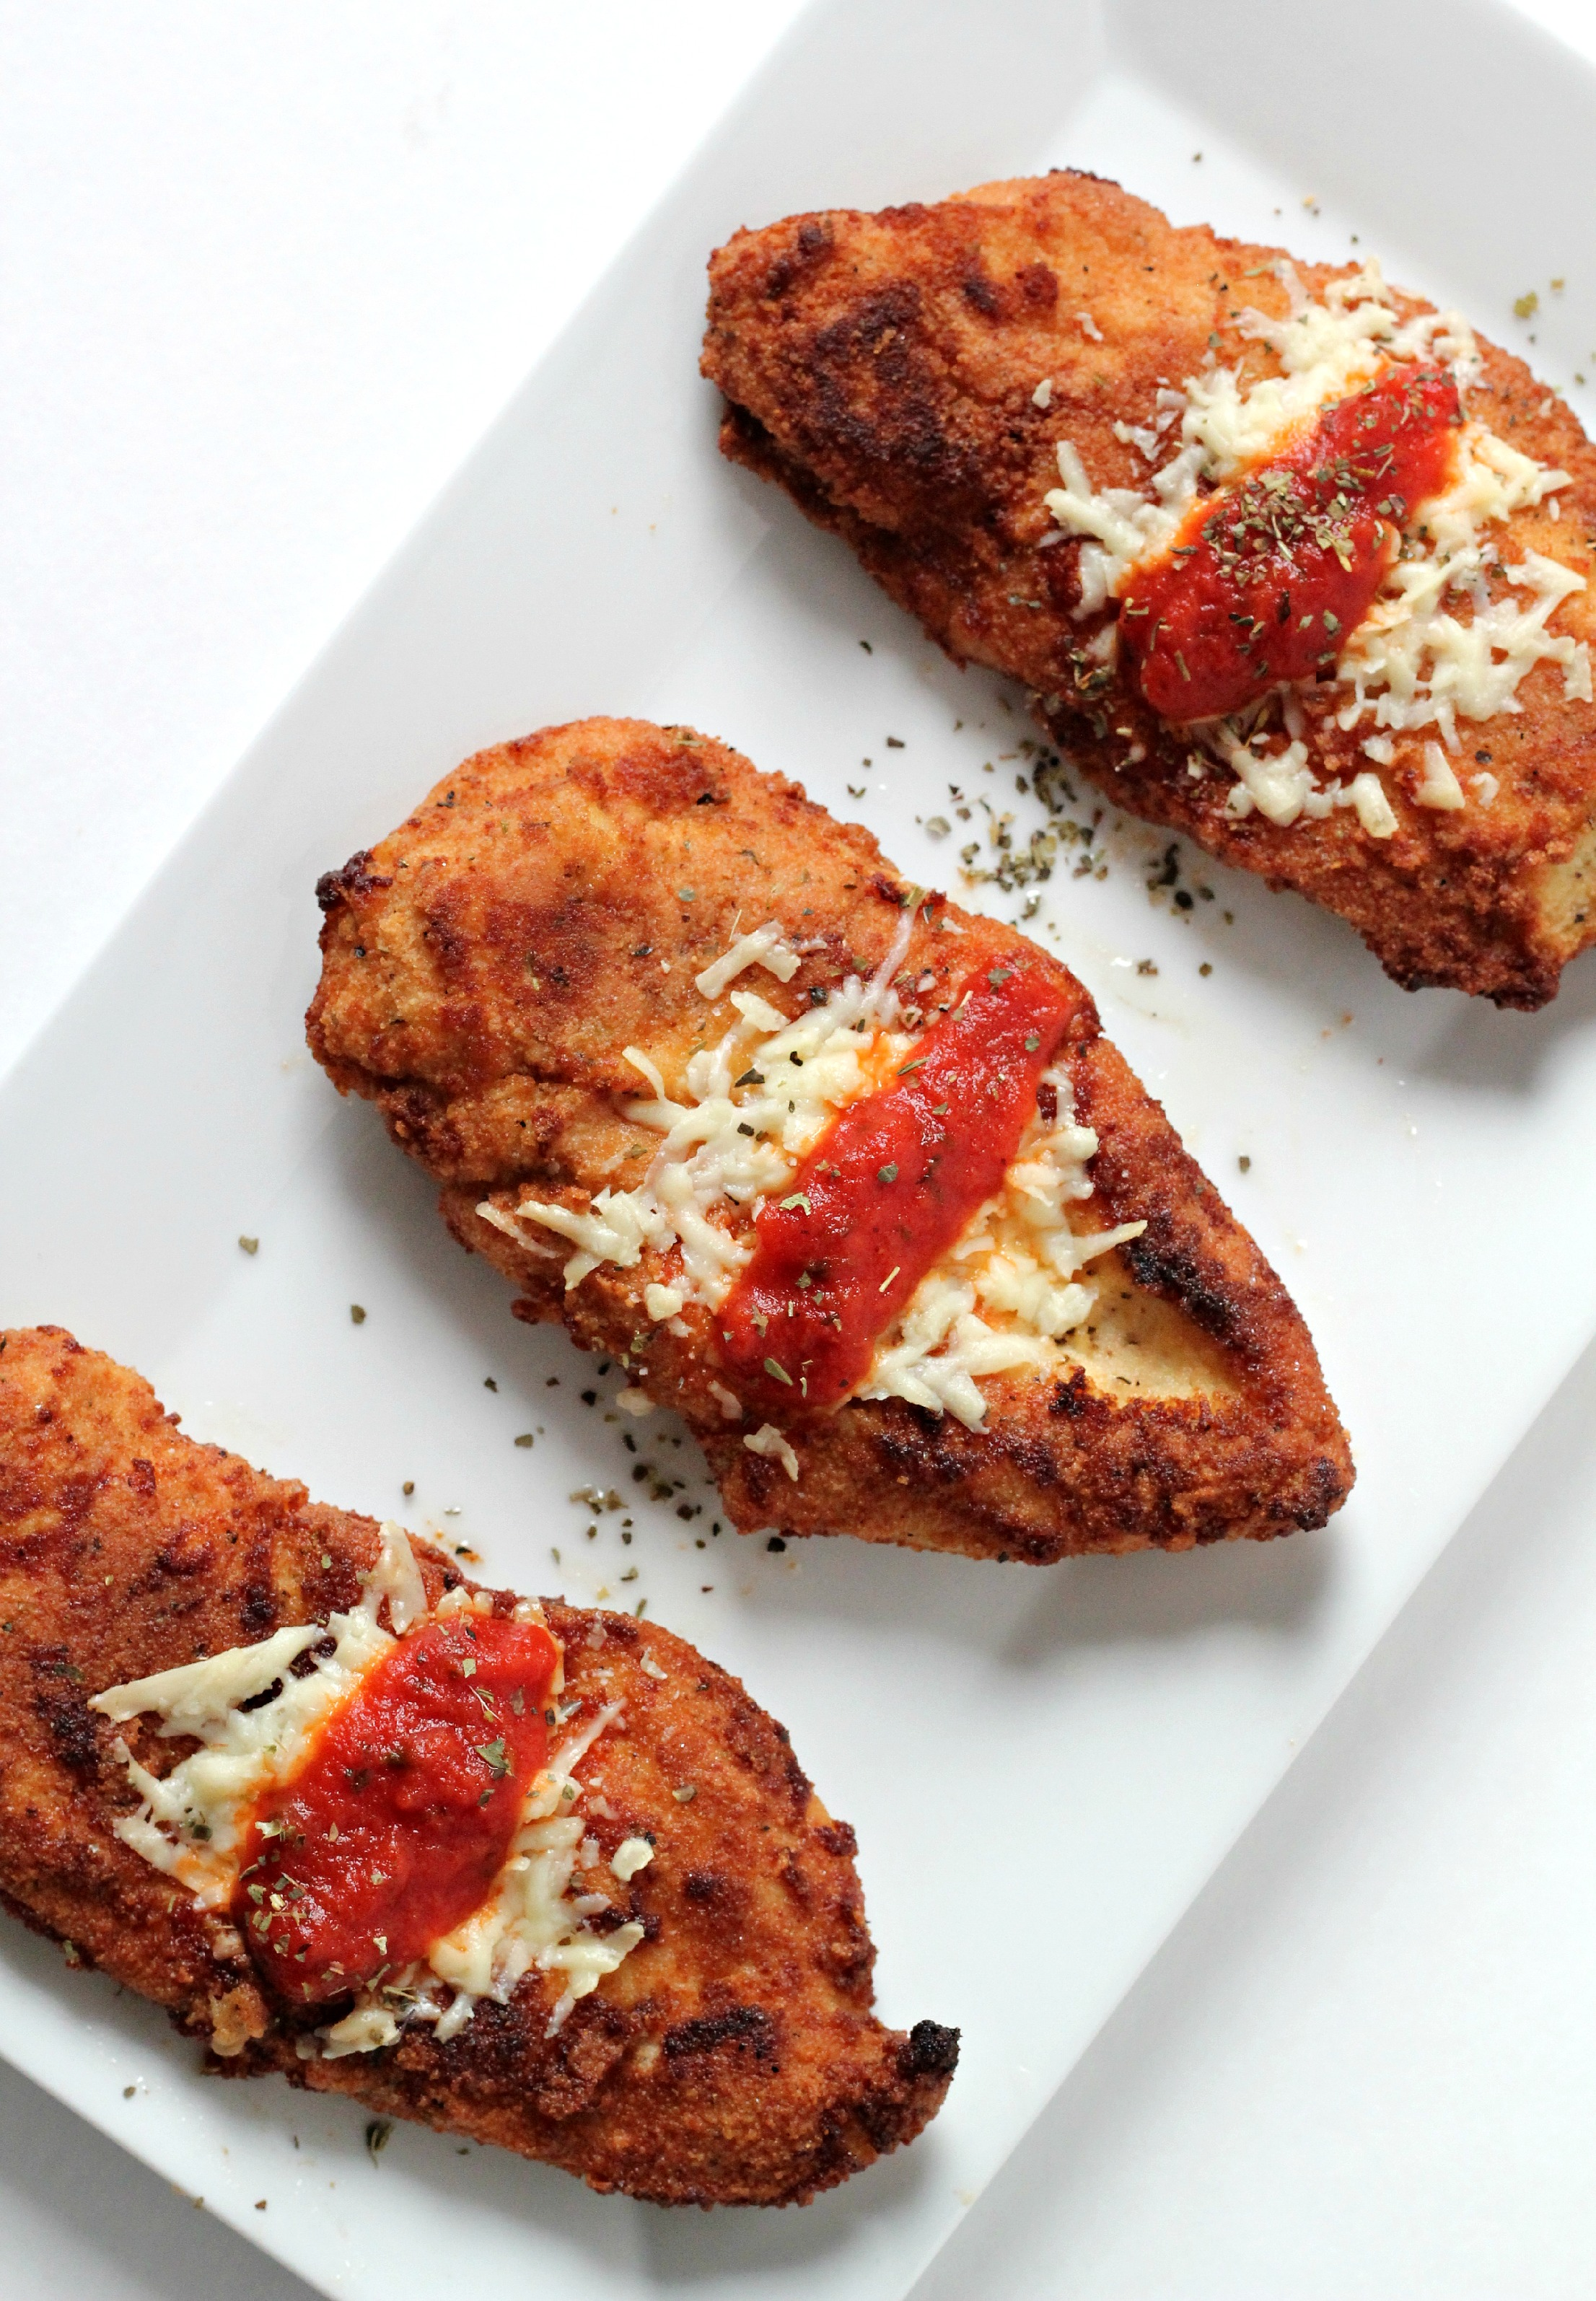 This is the best Grain Free Chicken Parmesan recipe! Make it for guests and they won't even know it's Paleo!